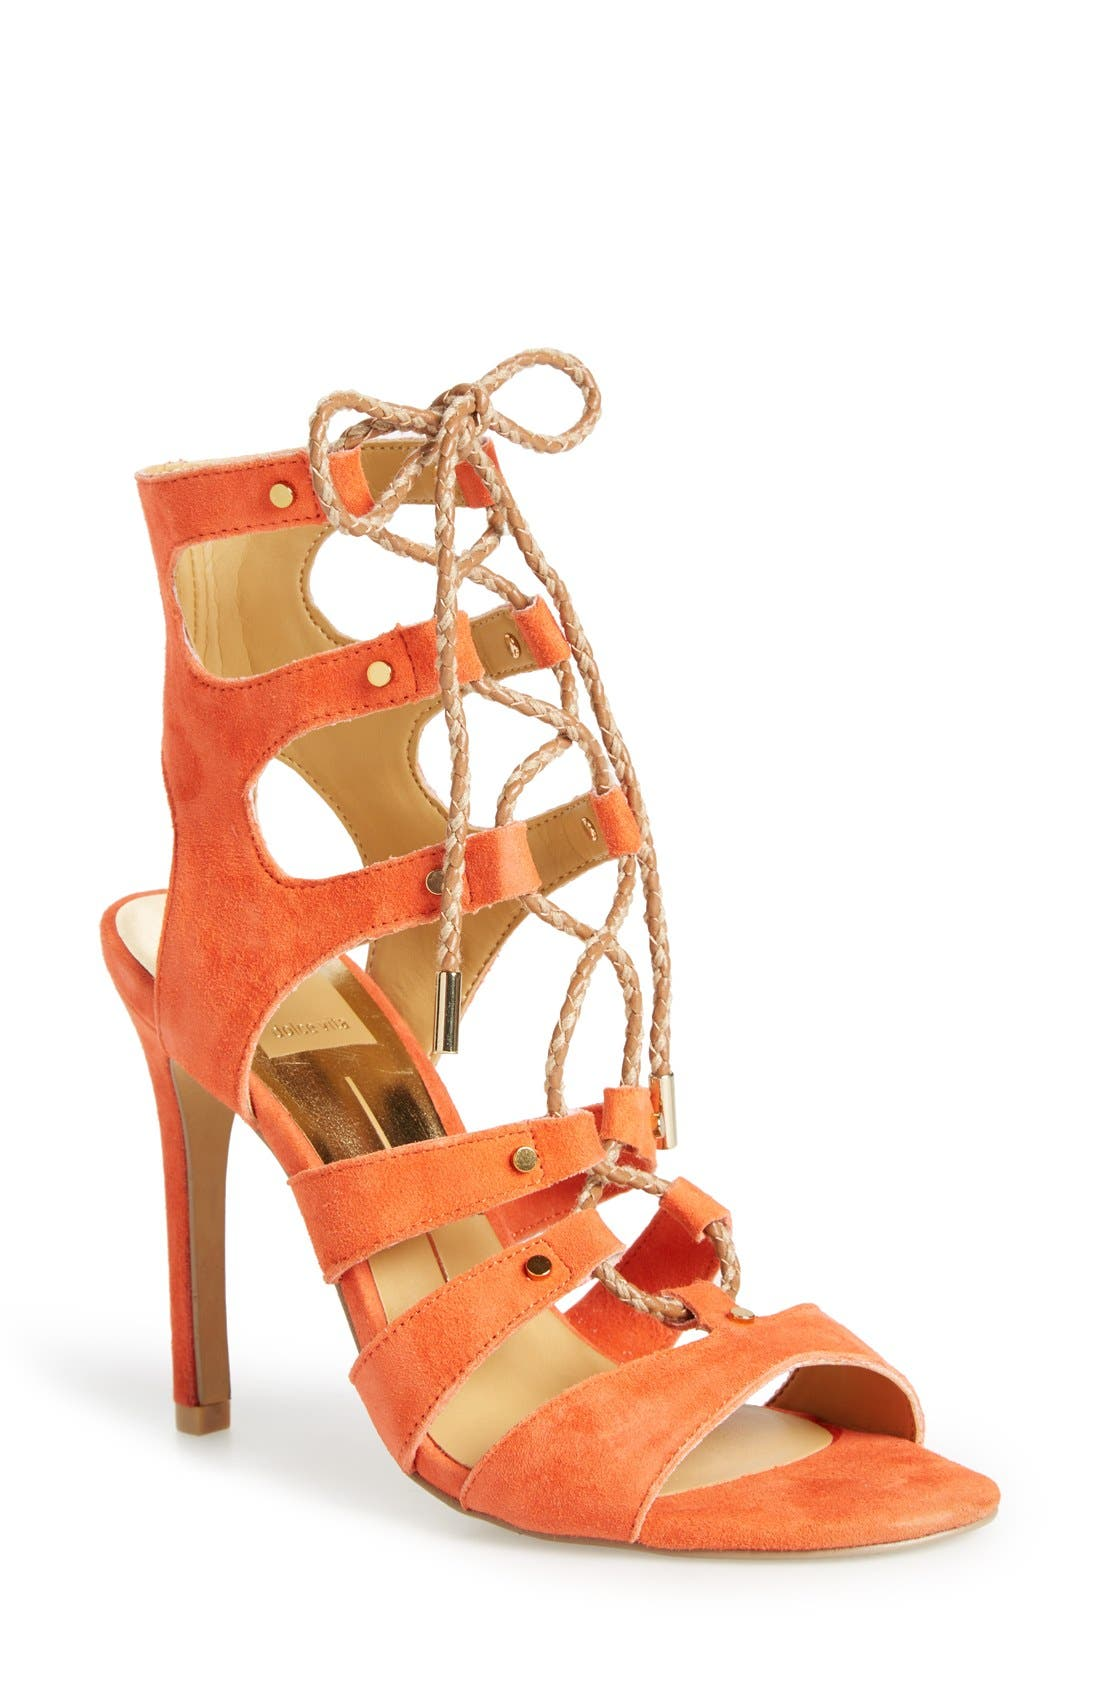 Main Image - Dolce Vita 'Howie' Lace-Up Sandal (Women)